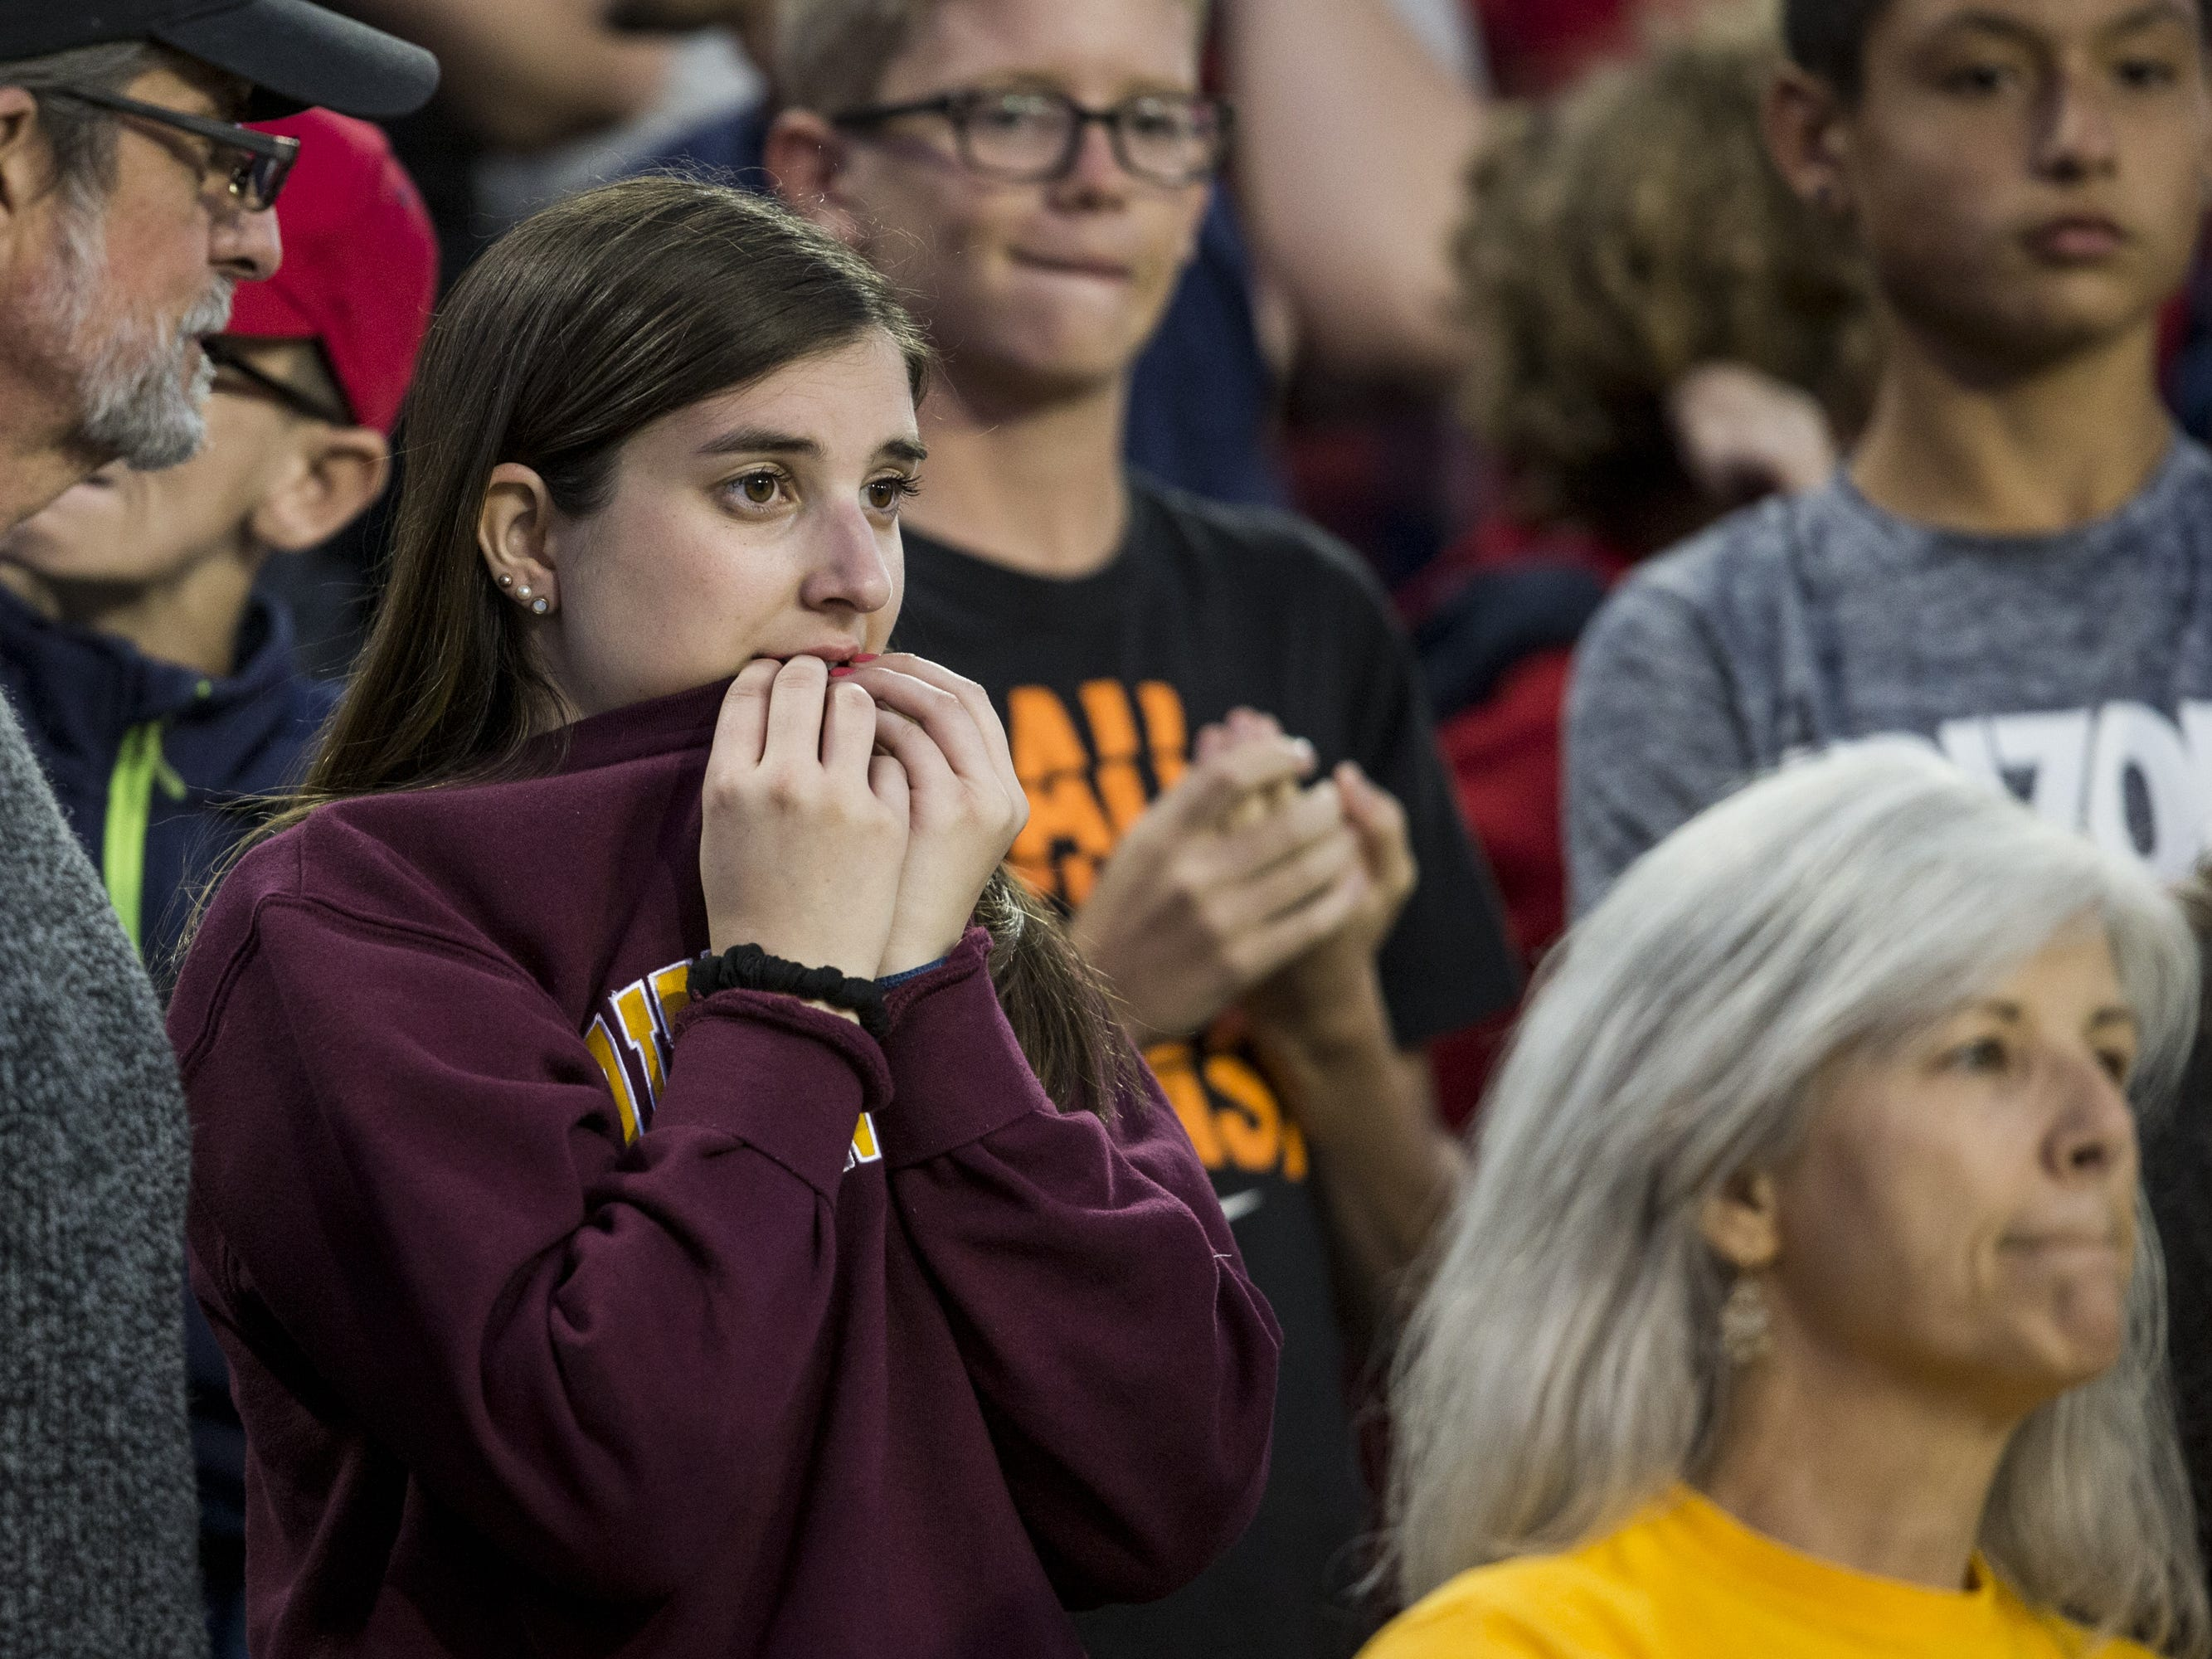 Arizona State fans watch the game against Arizona during the second half of the Territorial Cup on Saturday, Nov. 24, 2018, at Arizona Stadium in Tucson, Ariz. Arizona State won, 41-40.